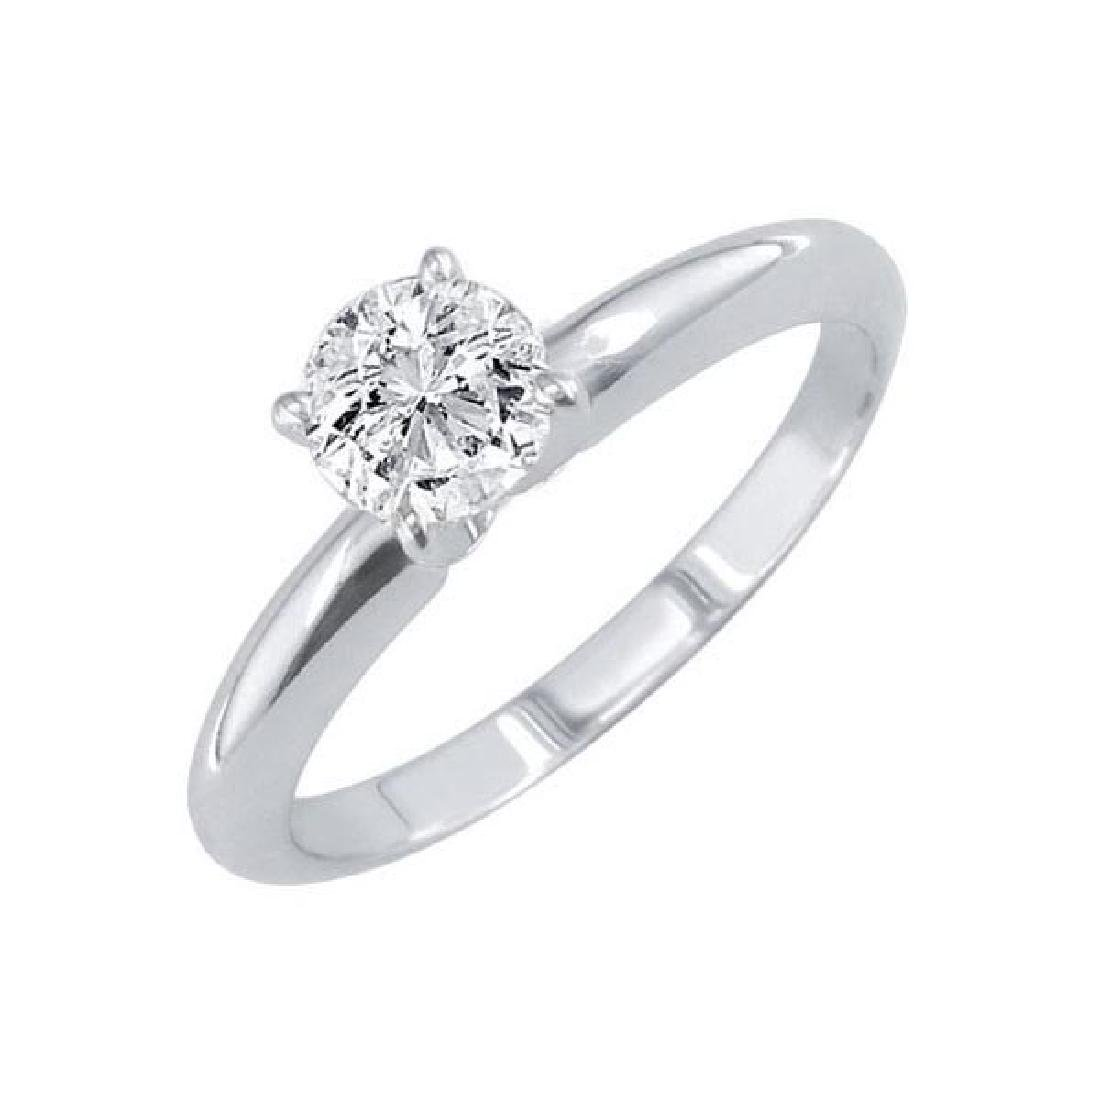 Certified 1.25 CTW Round Diamond Solitaire 14k Ring E/S